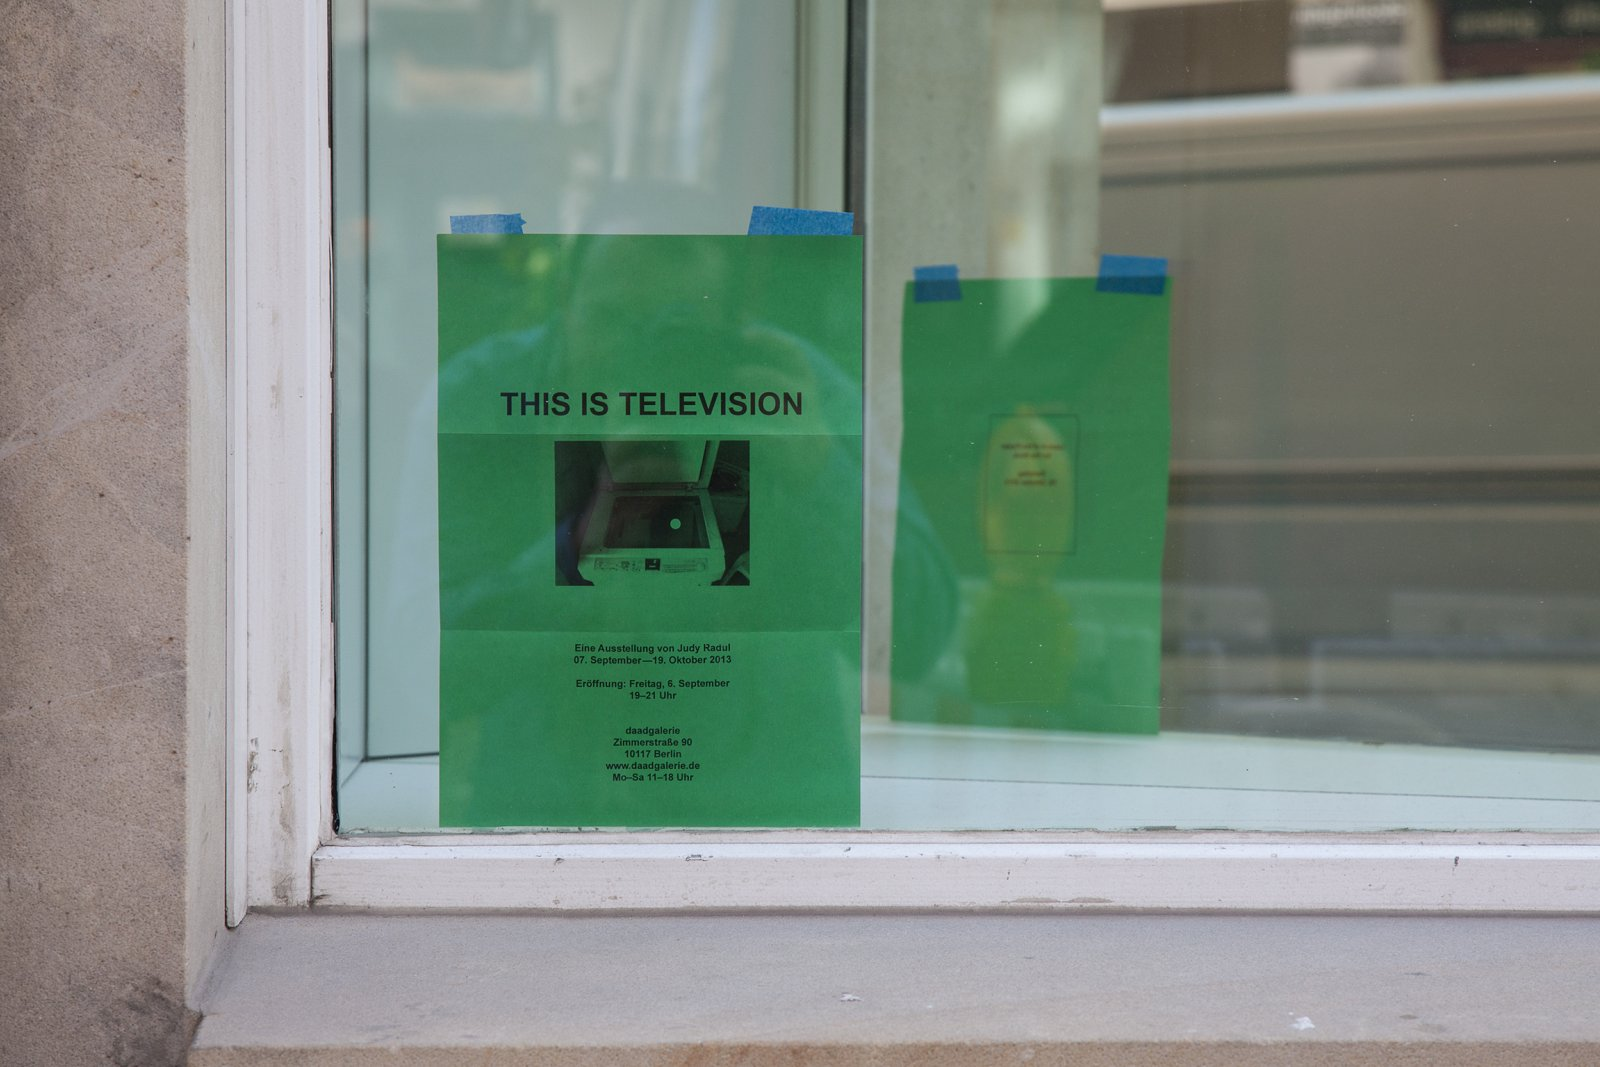 Judy Radul, EXHIBITION INVITATION (detail), 2013, mirror, black and white photocopy on green paper, dimensions variable. Installation view, This is Television, Daadgalerie, Berlin, Germany, 2013 by Judy Radul